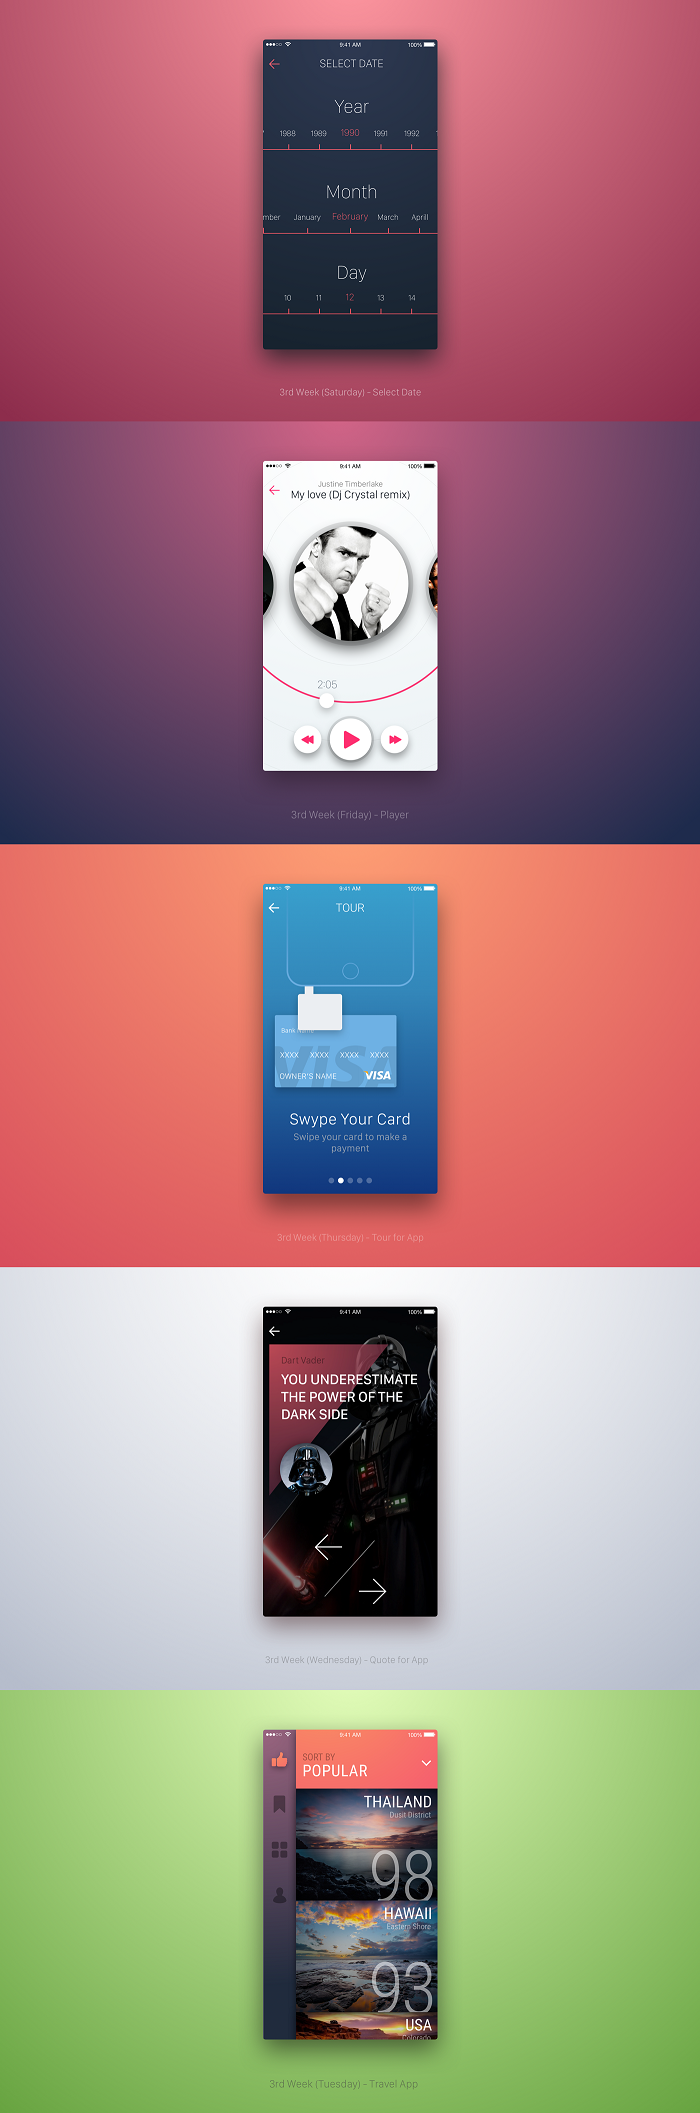 behance ron designlab (6)